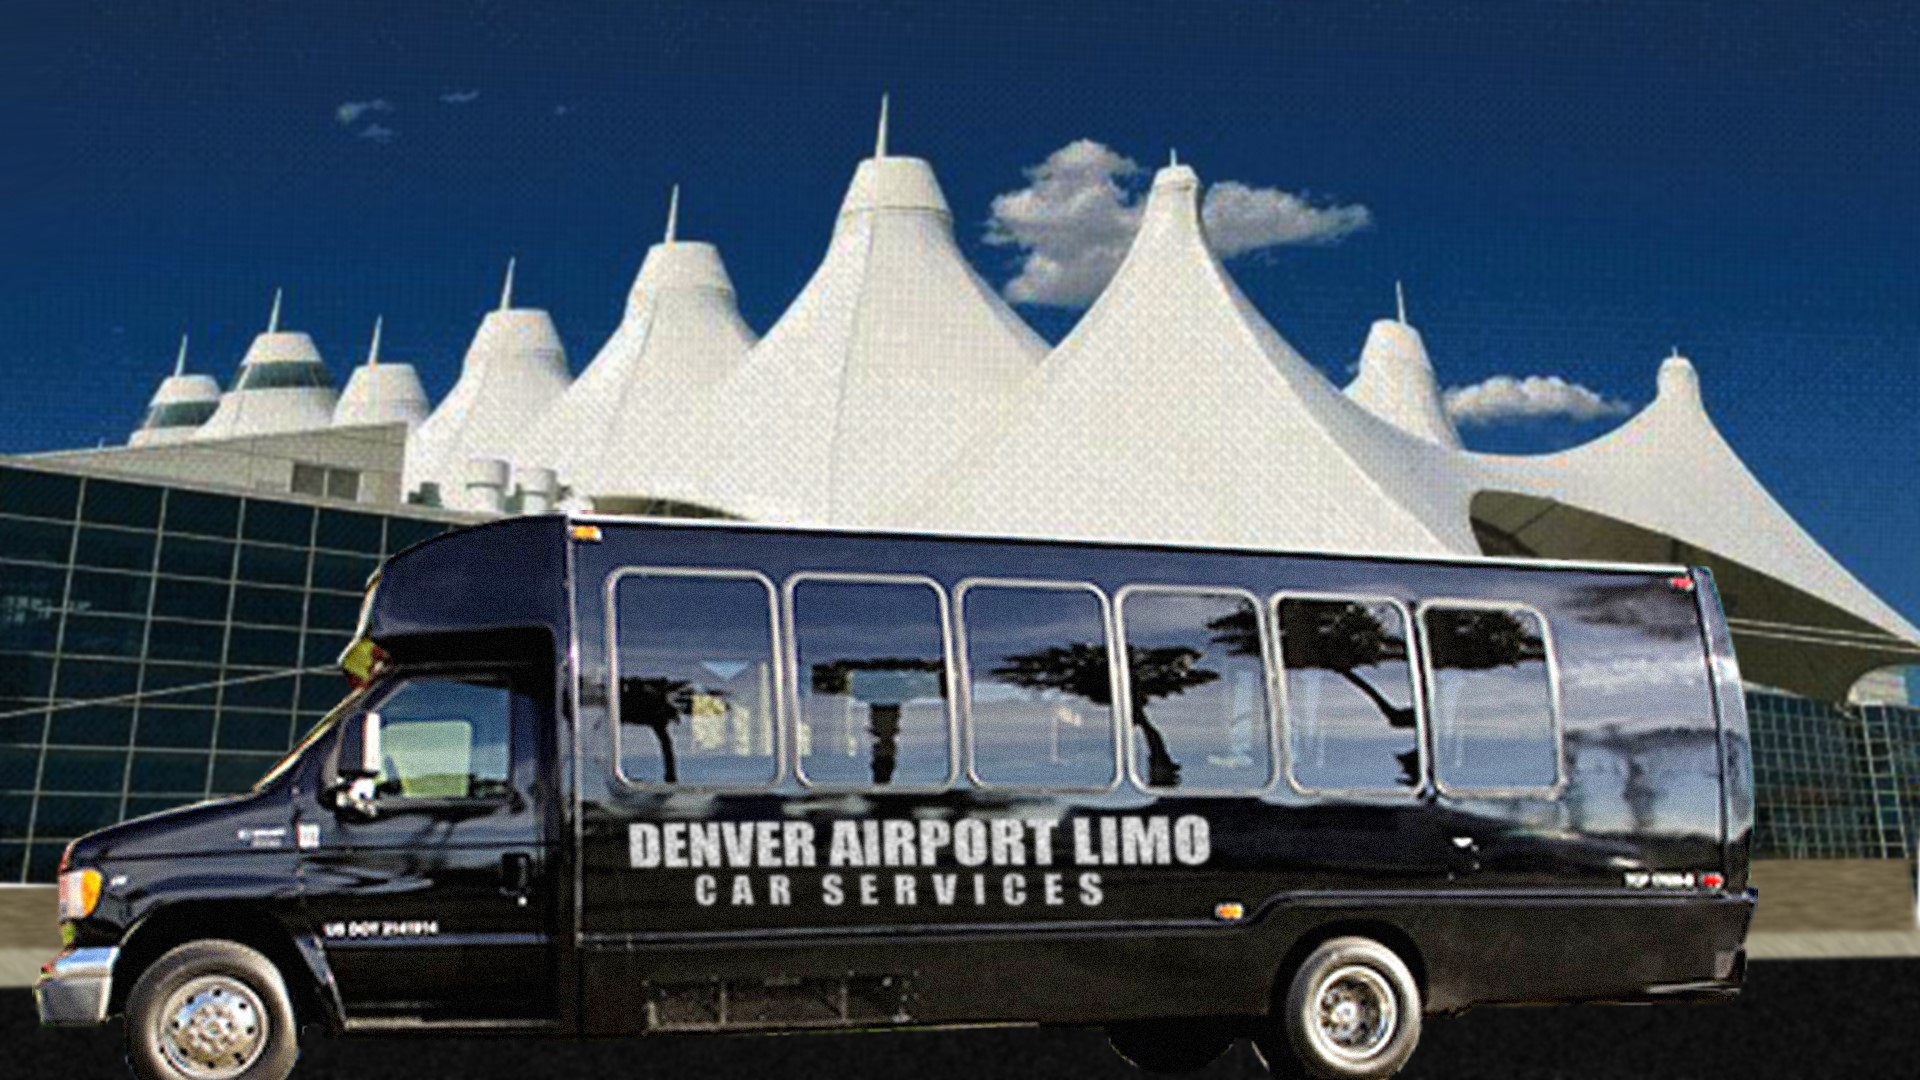 Denver Group Transfer Services